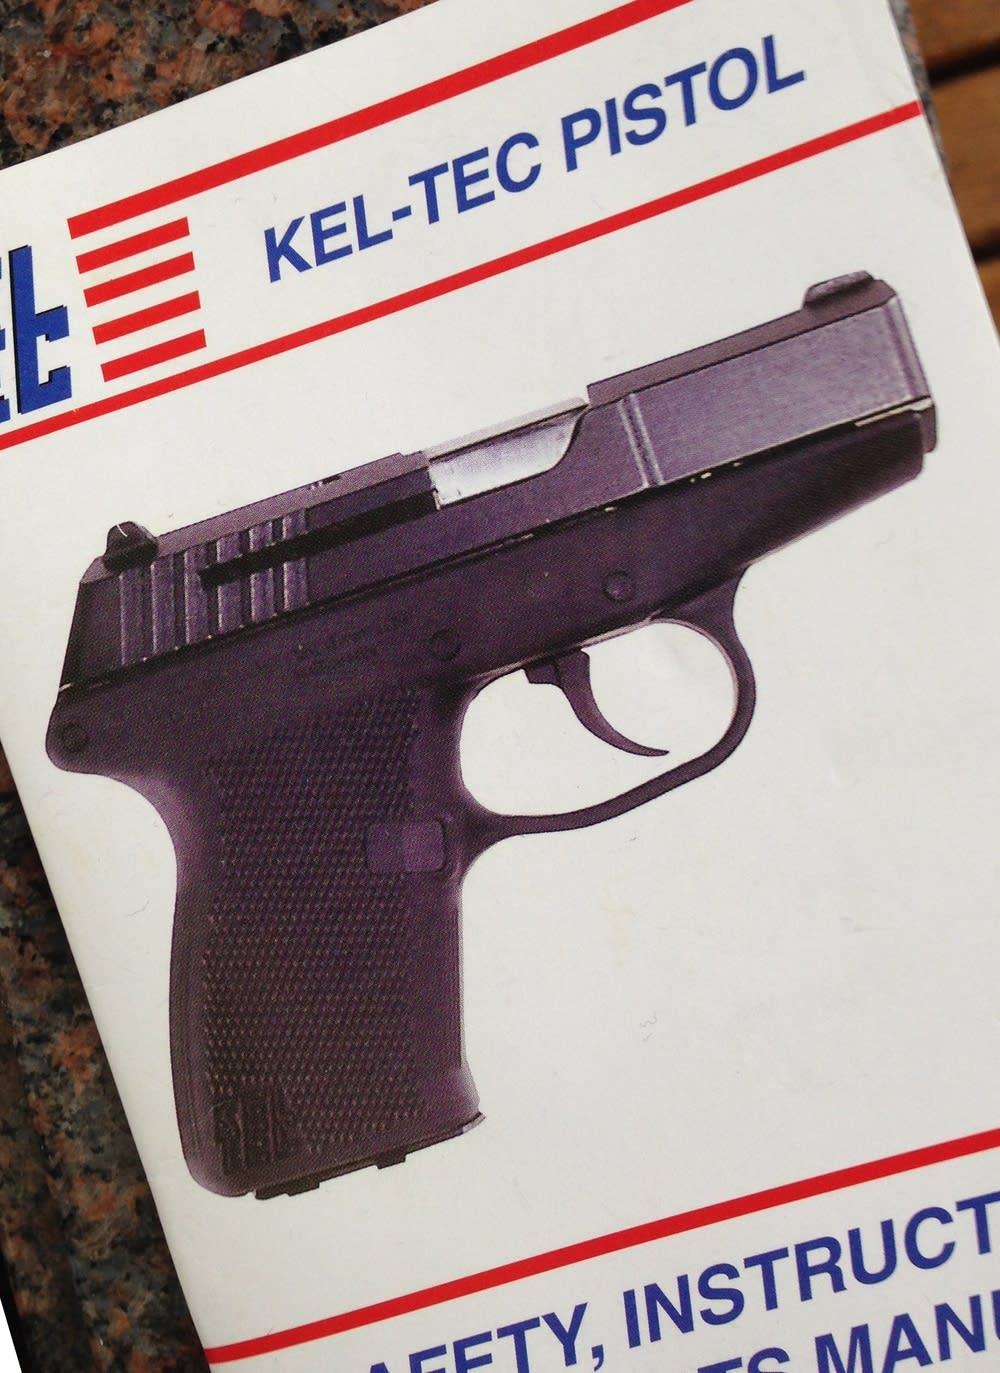 Kel-tec pistol manual